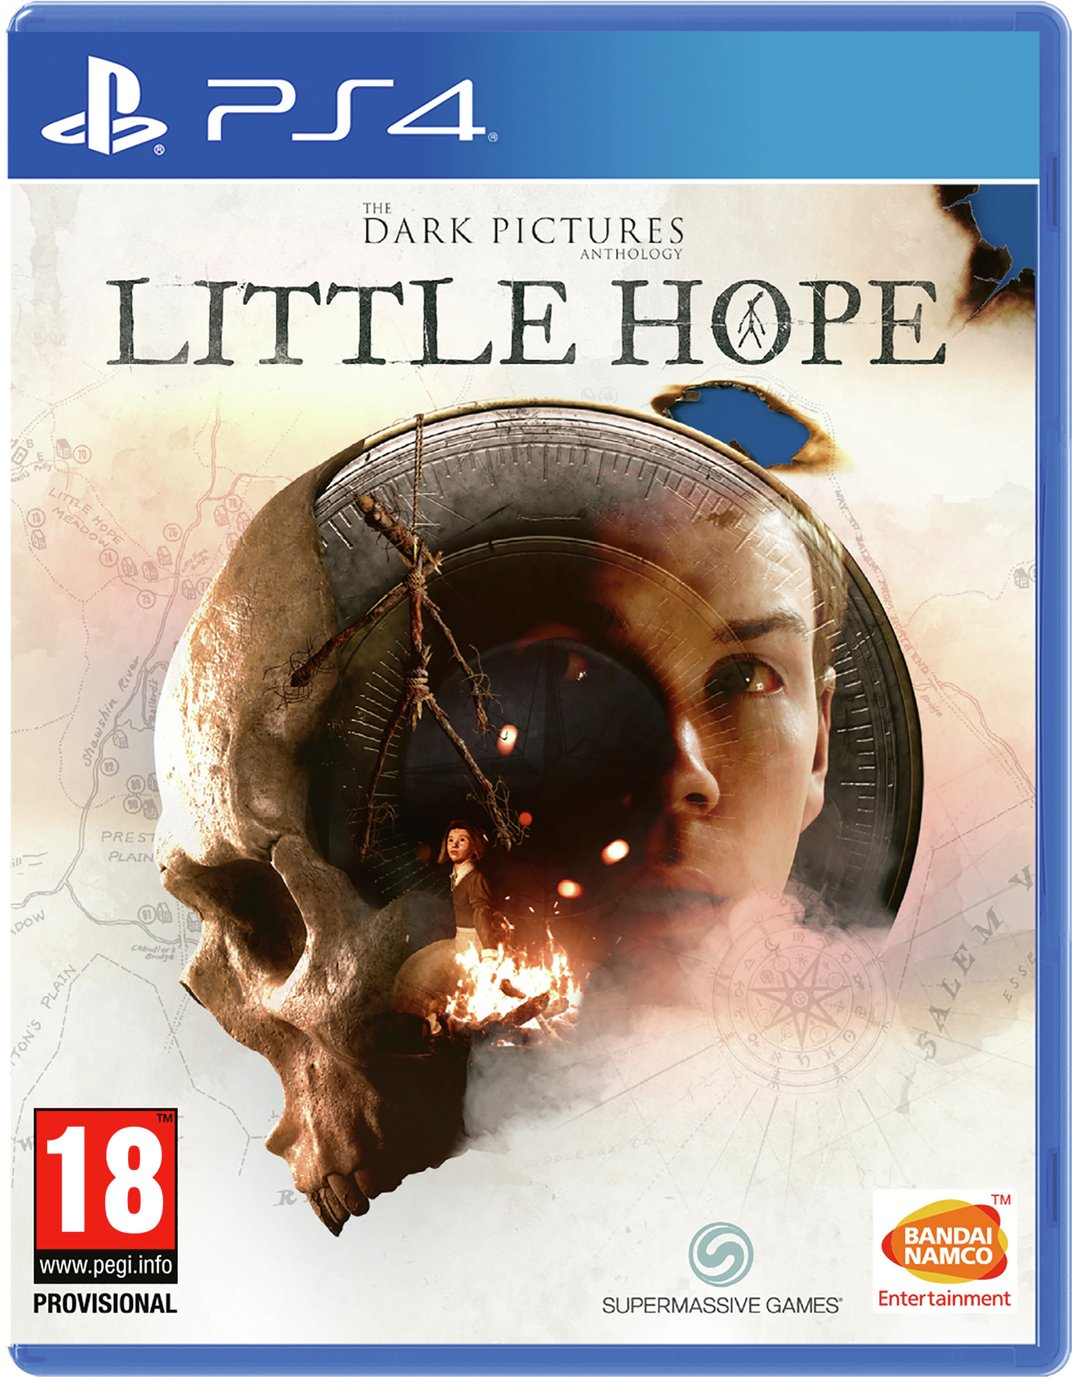 Dark Pictures Anthology: Little Hope PS4 Game